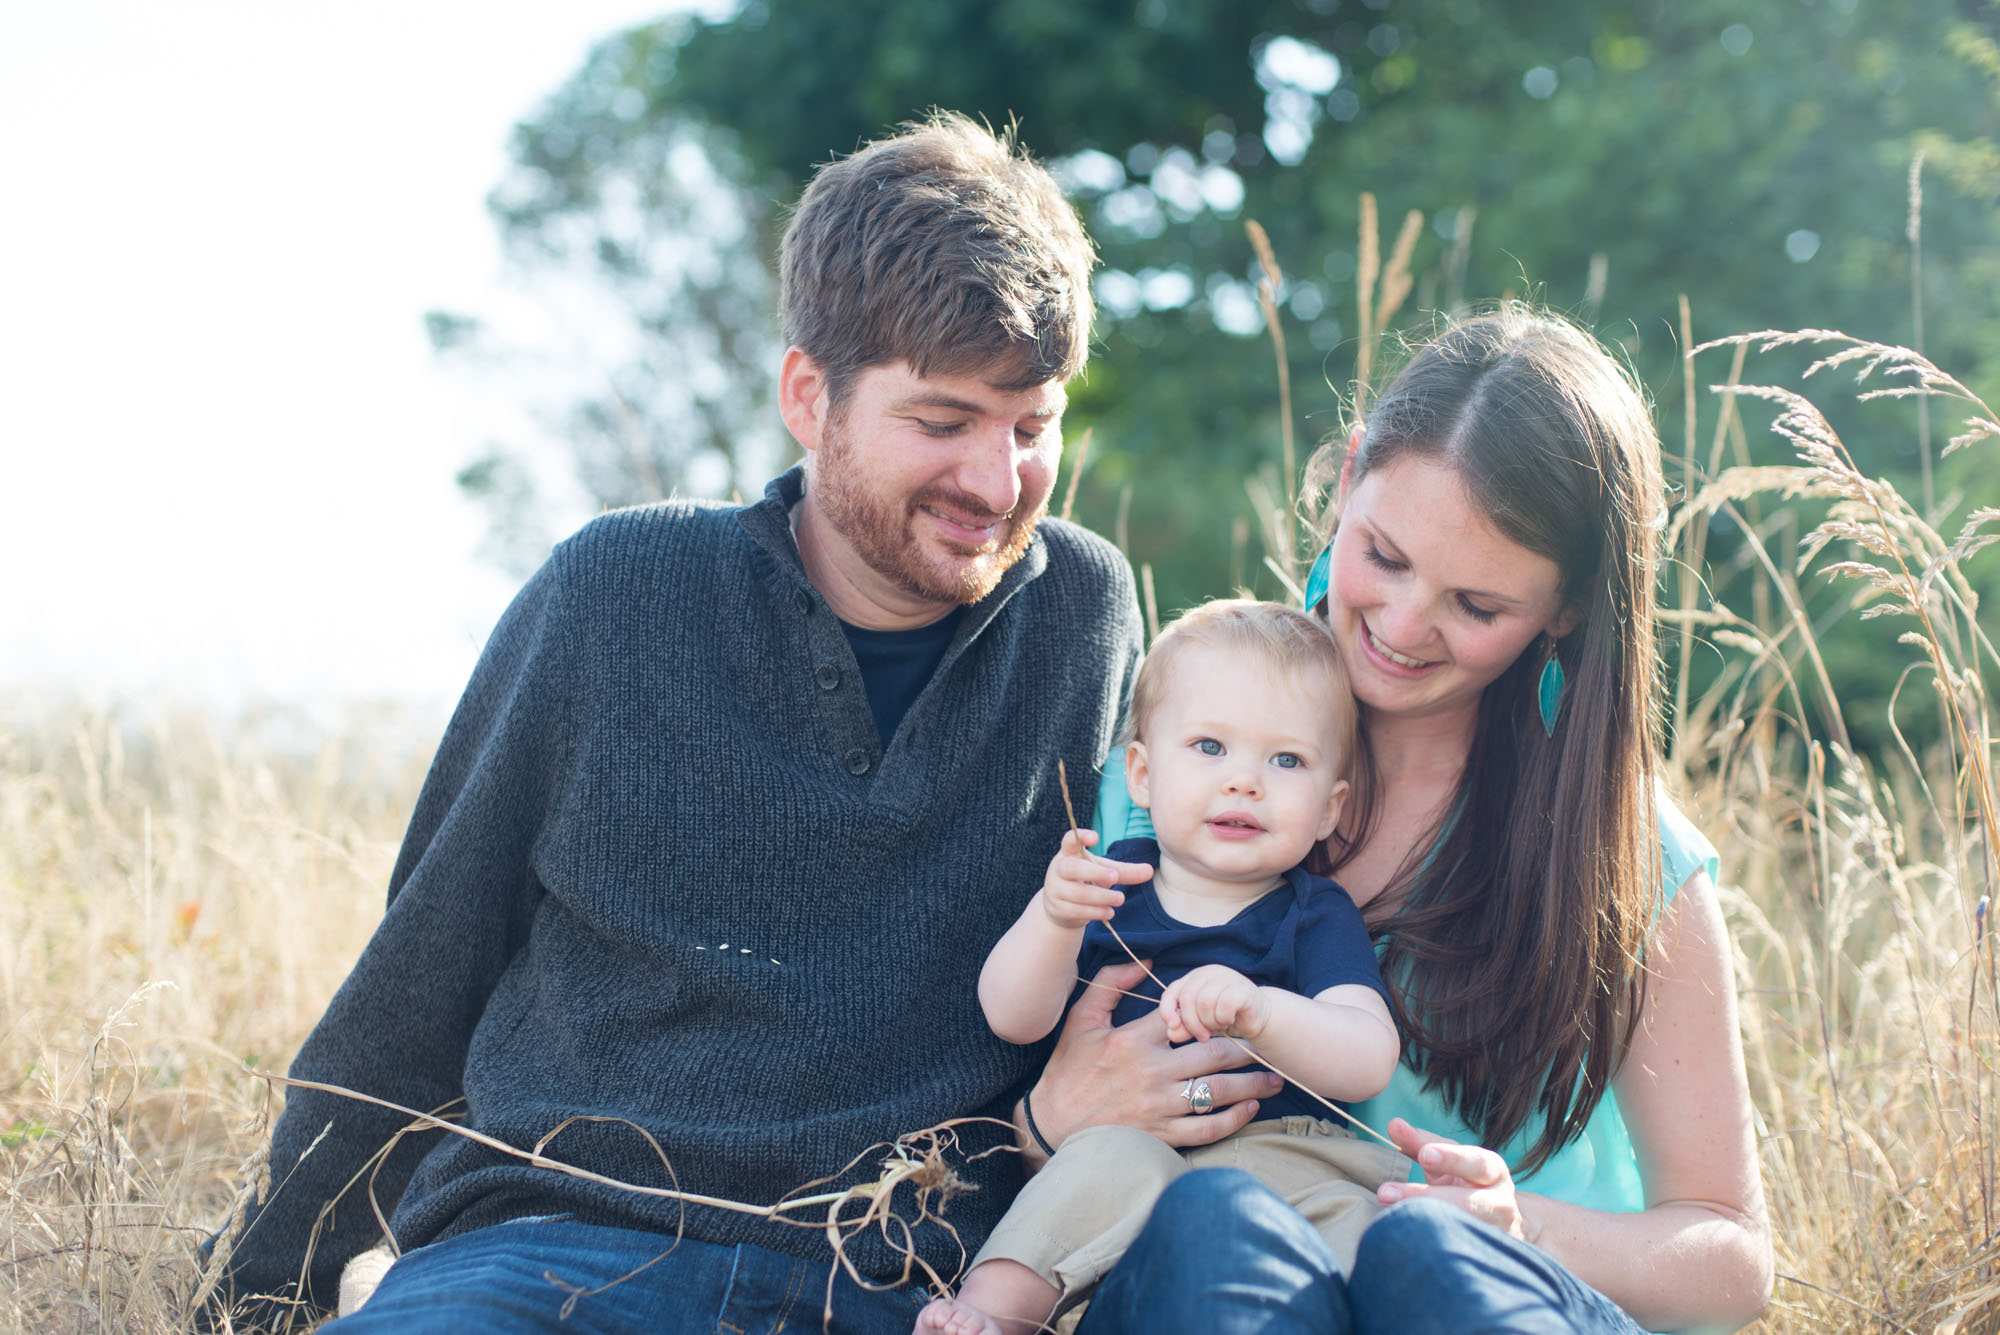 tacoma-wildflower-family-session-7.jpg